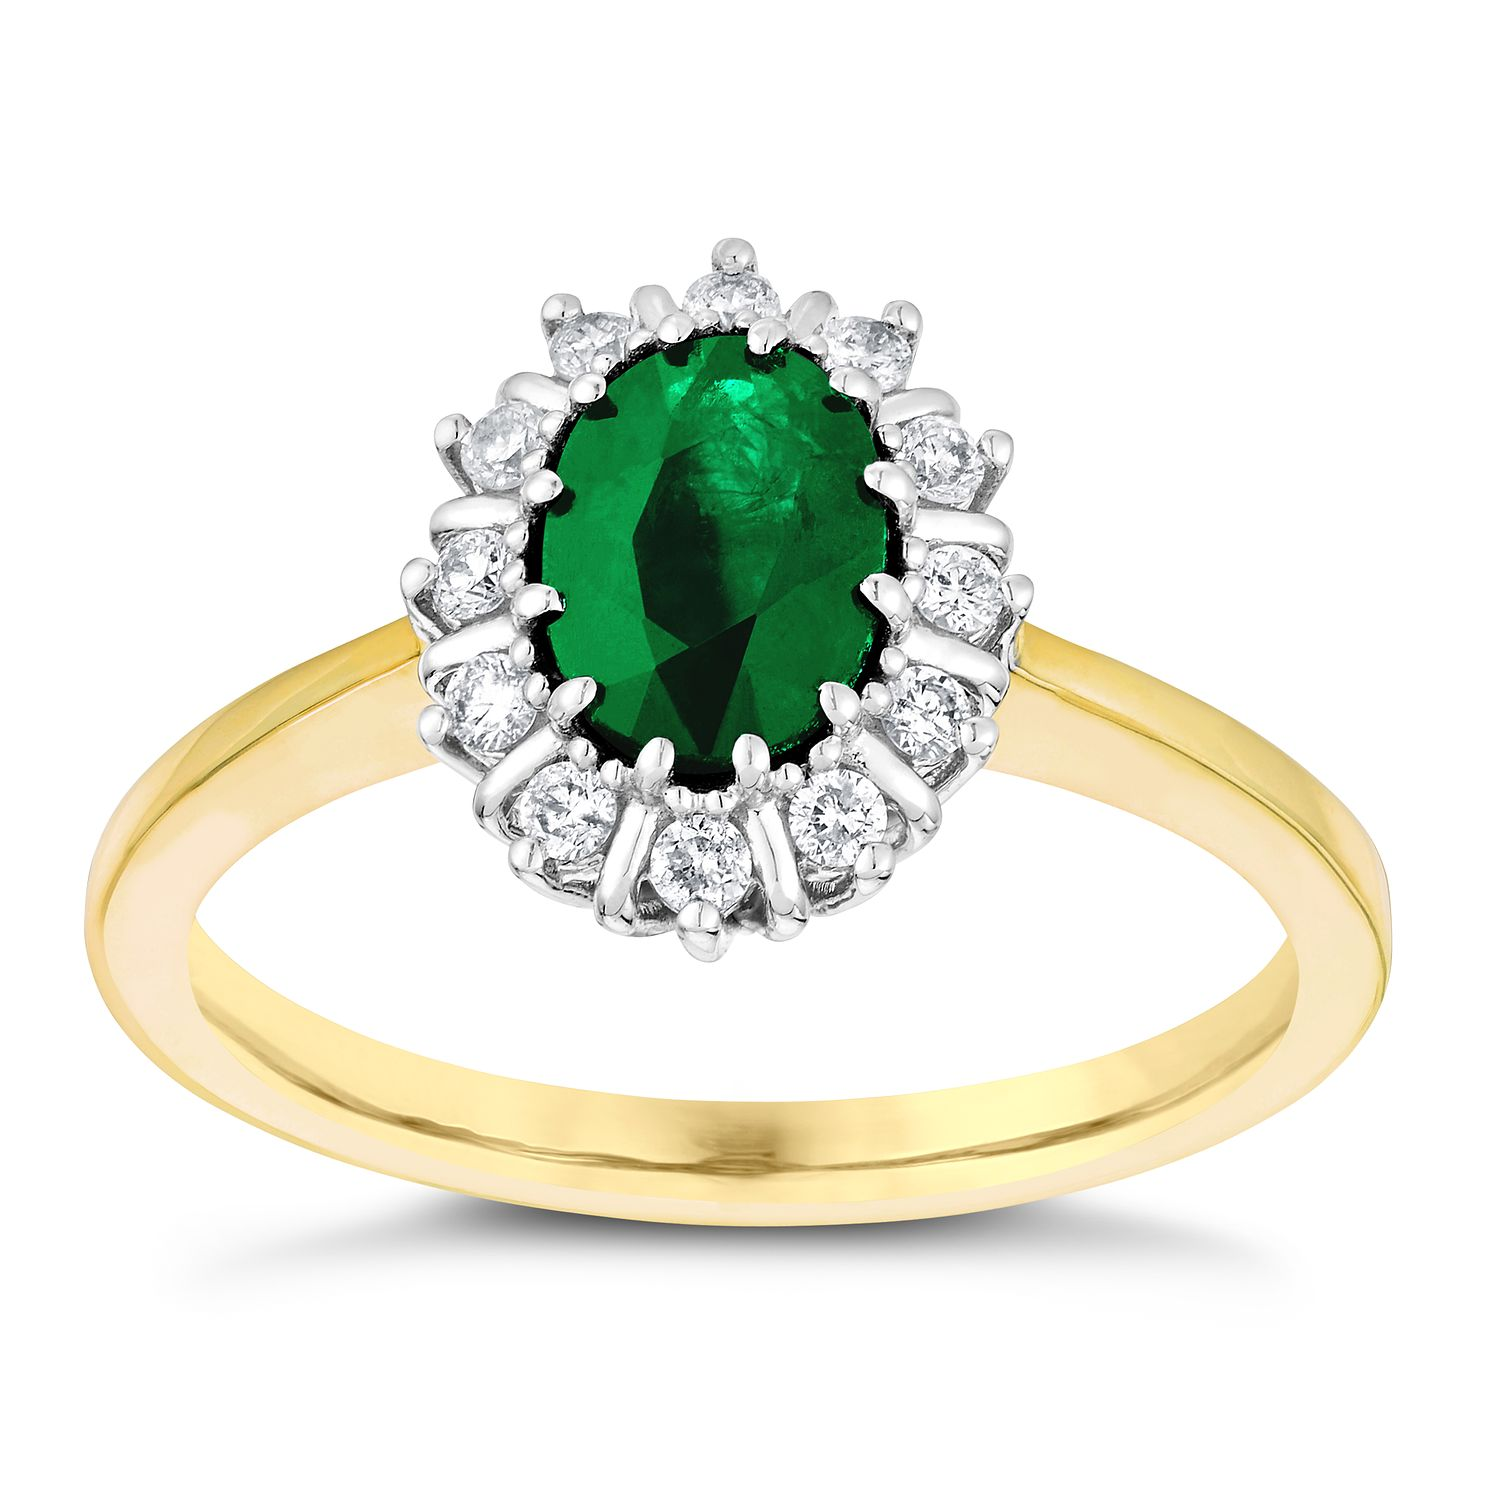 18ct Yellow & White Gold Emerald & 0.15ct Diamond Ring - Product number 3072096